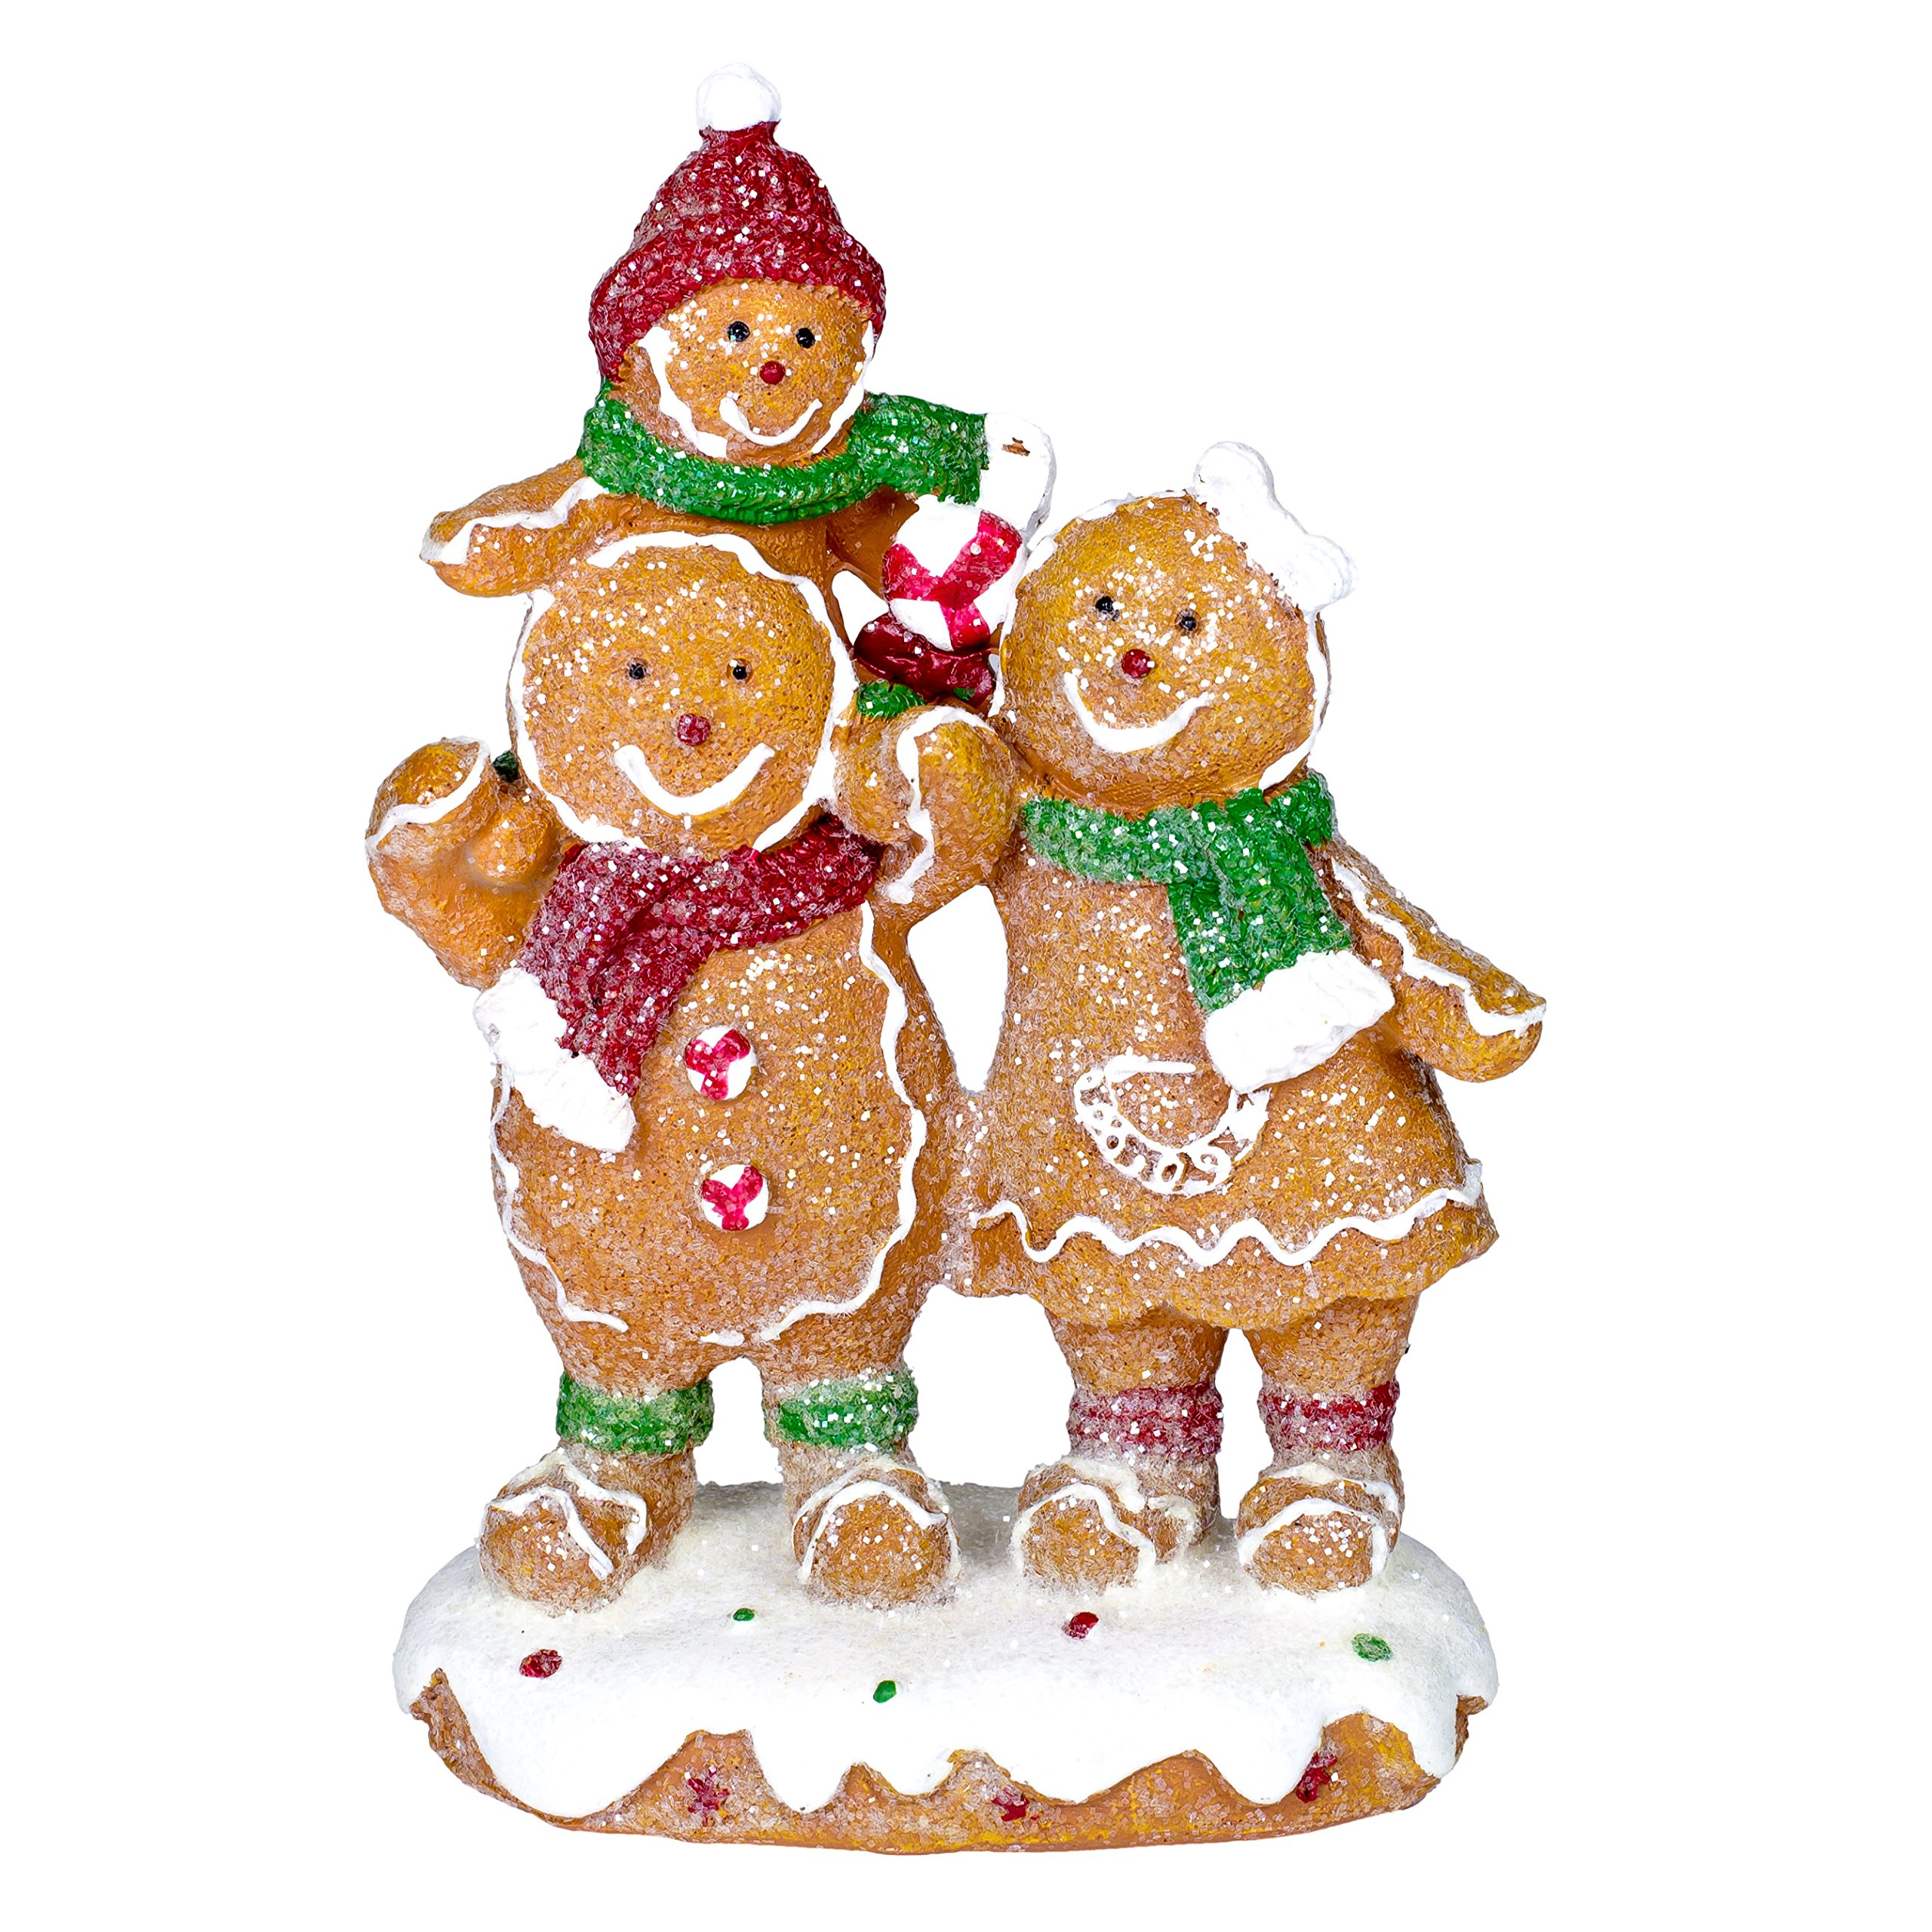 Gingerbread Family Glitter 4.5 x 6 Inch Resin Tabletop Christmas Figurine by Delton Products Corp